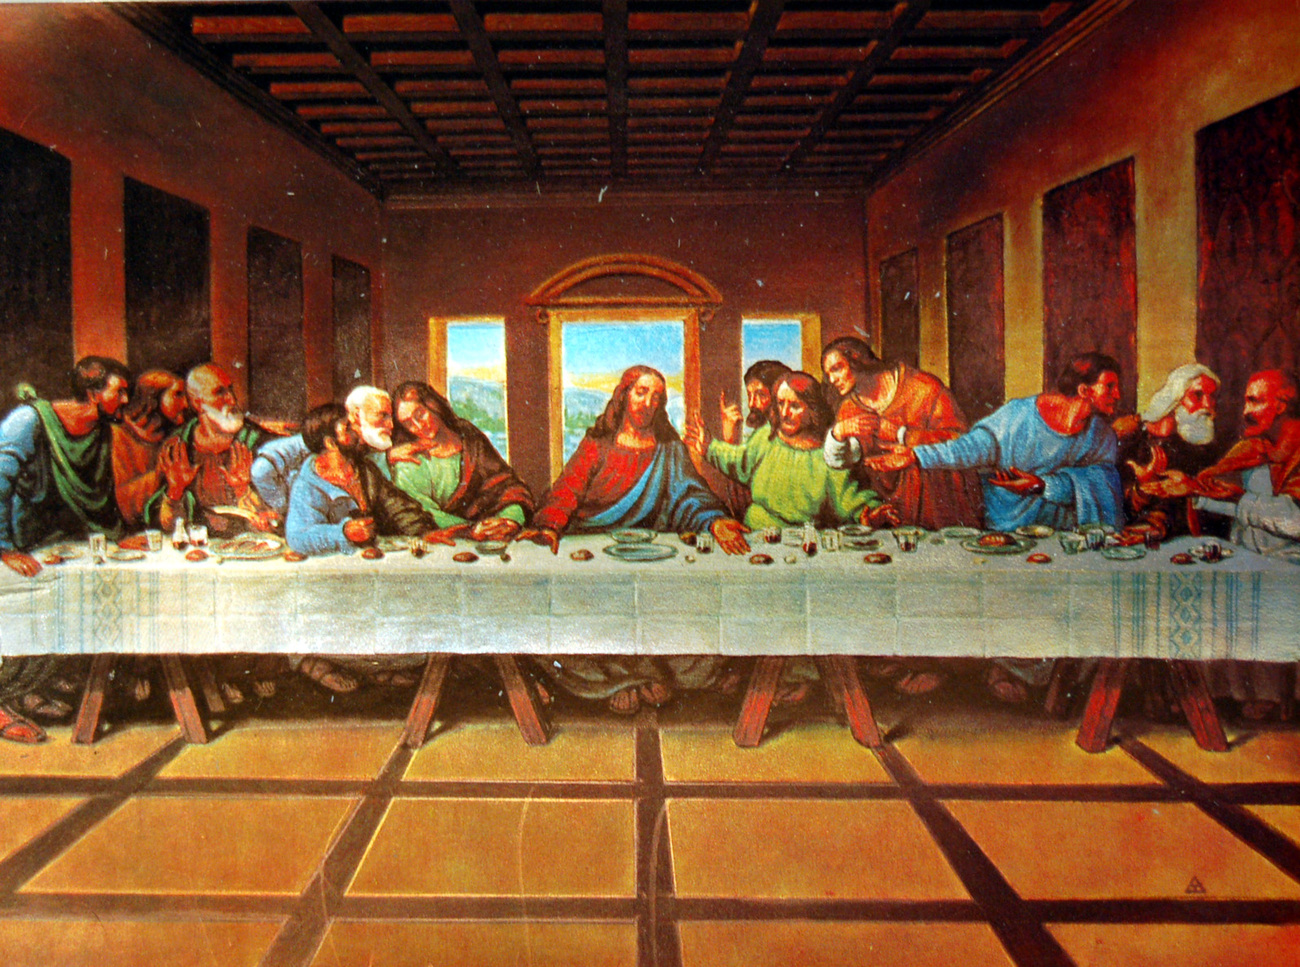 000000 the last supper